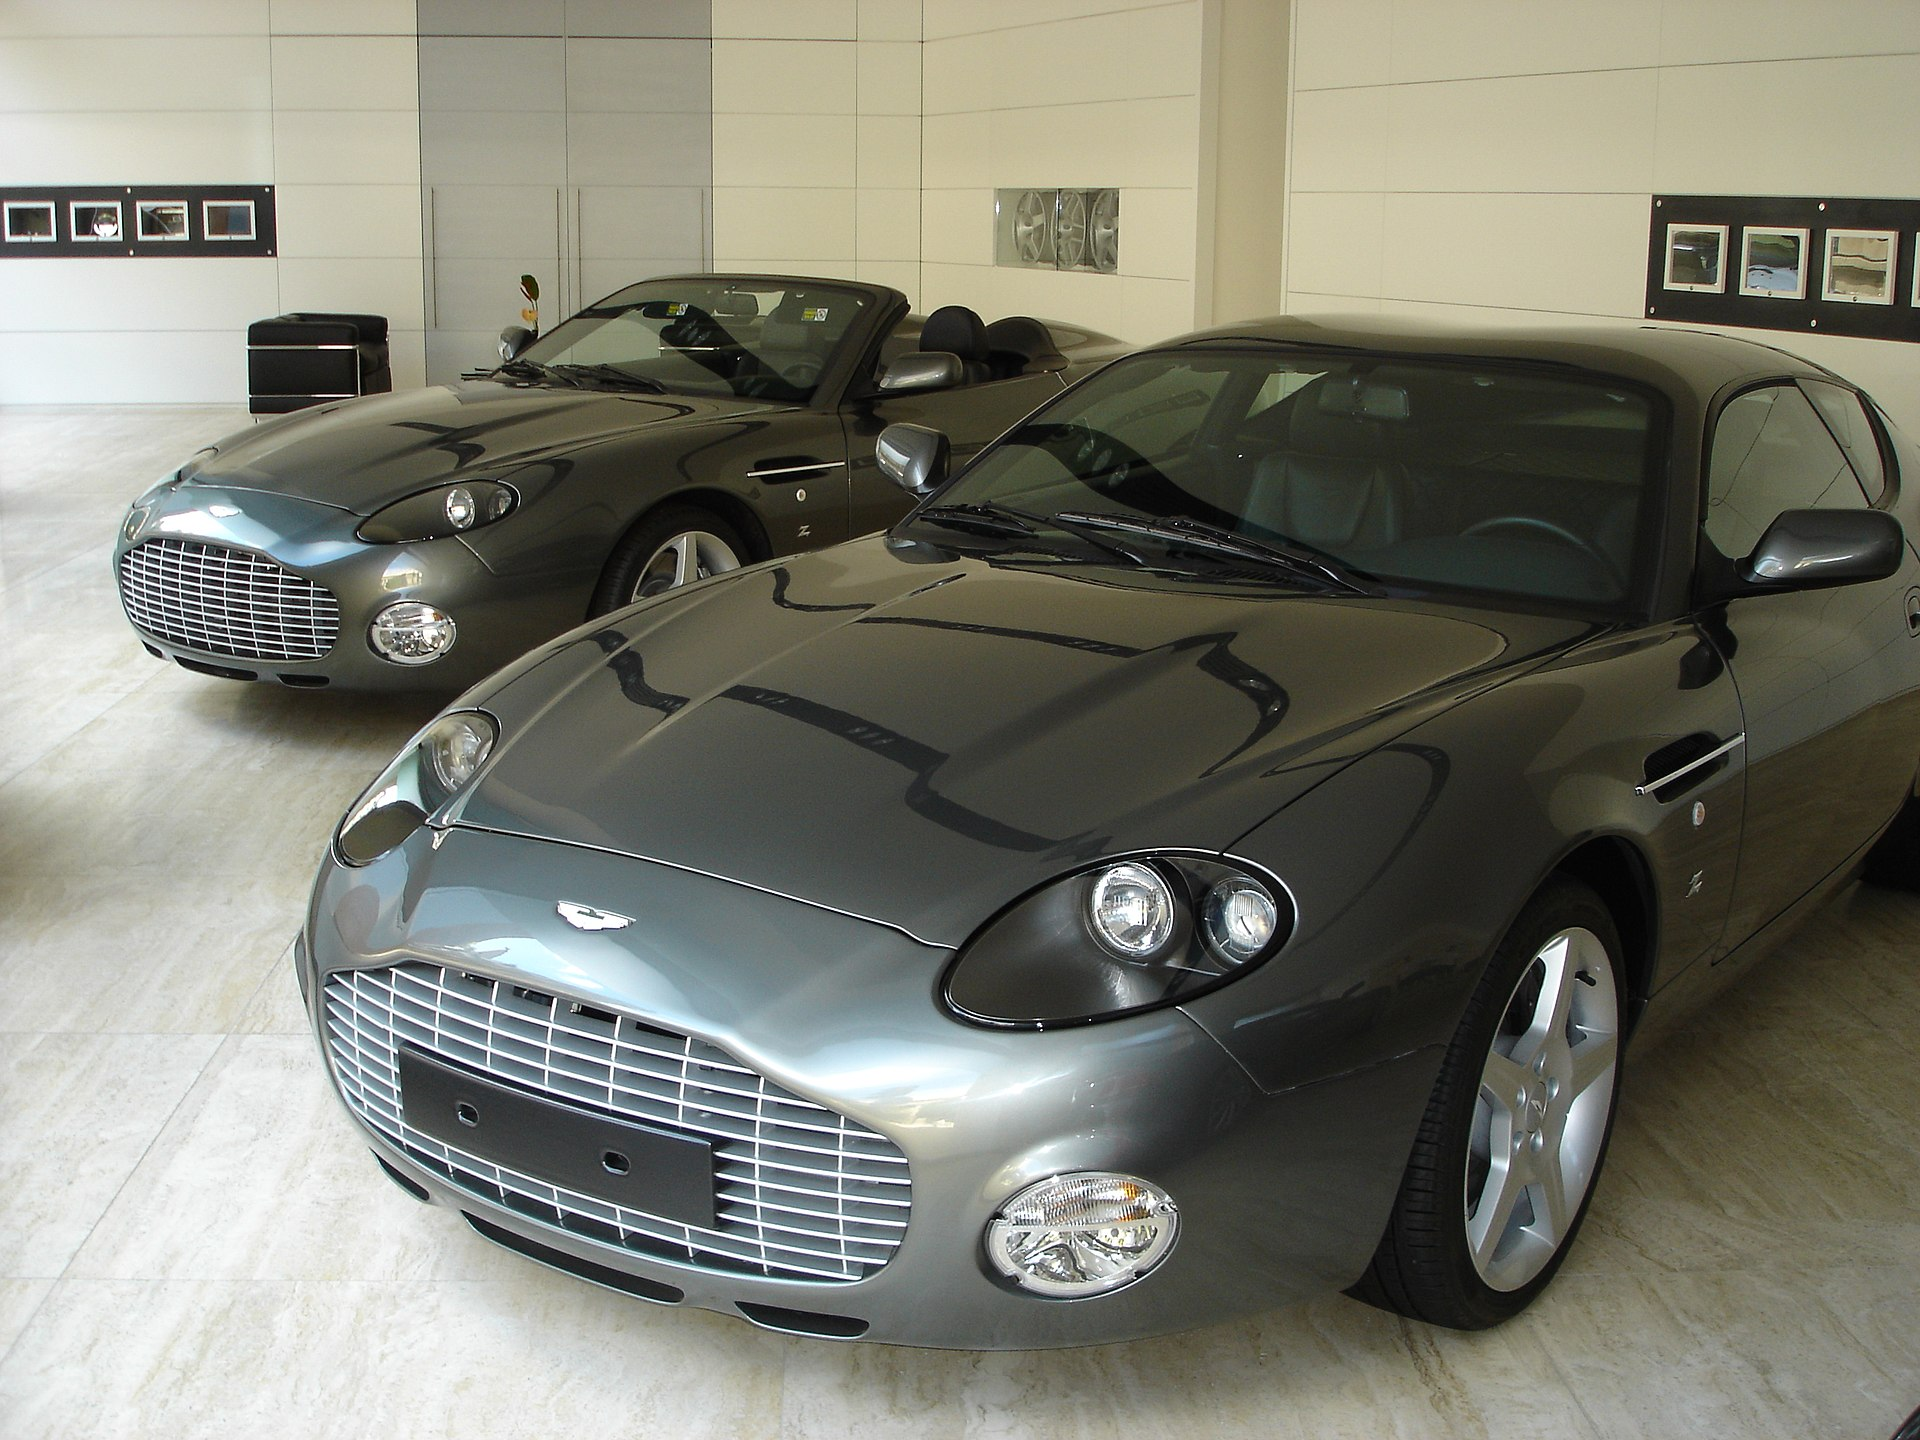 Aston Martin Db7 Zagato Wikipedia HD Wallpapers Download free images and photos [musssic.tk]